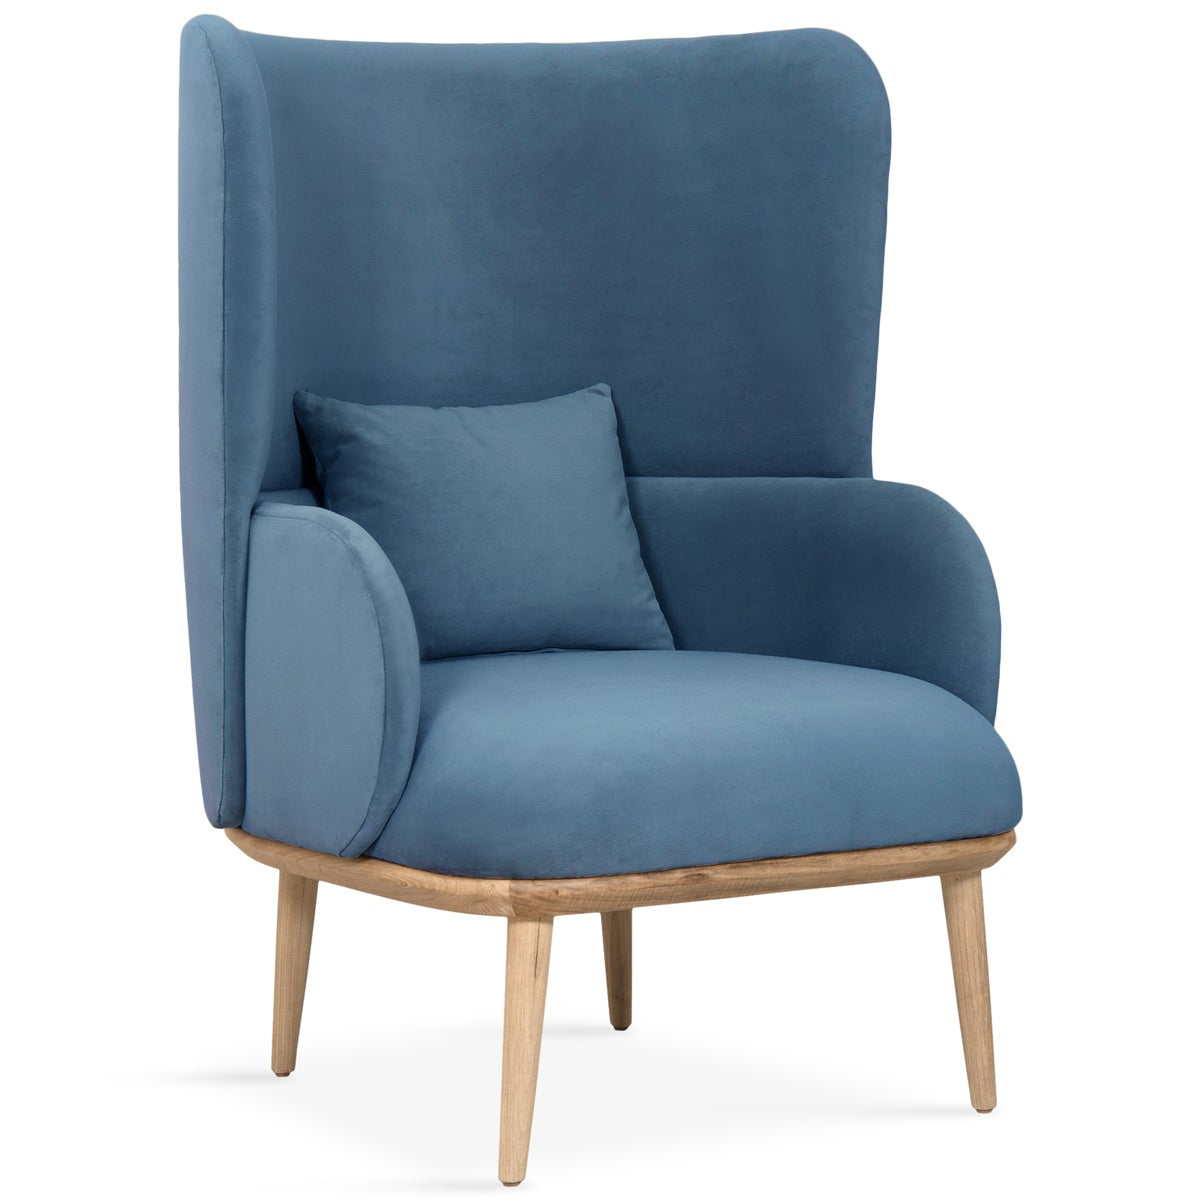 Copenhagen Wing Chair - ModShop1.com